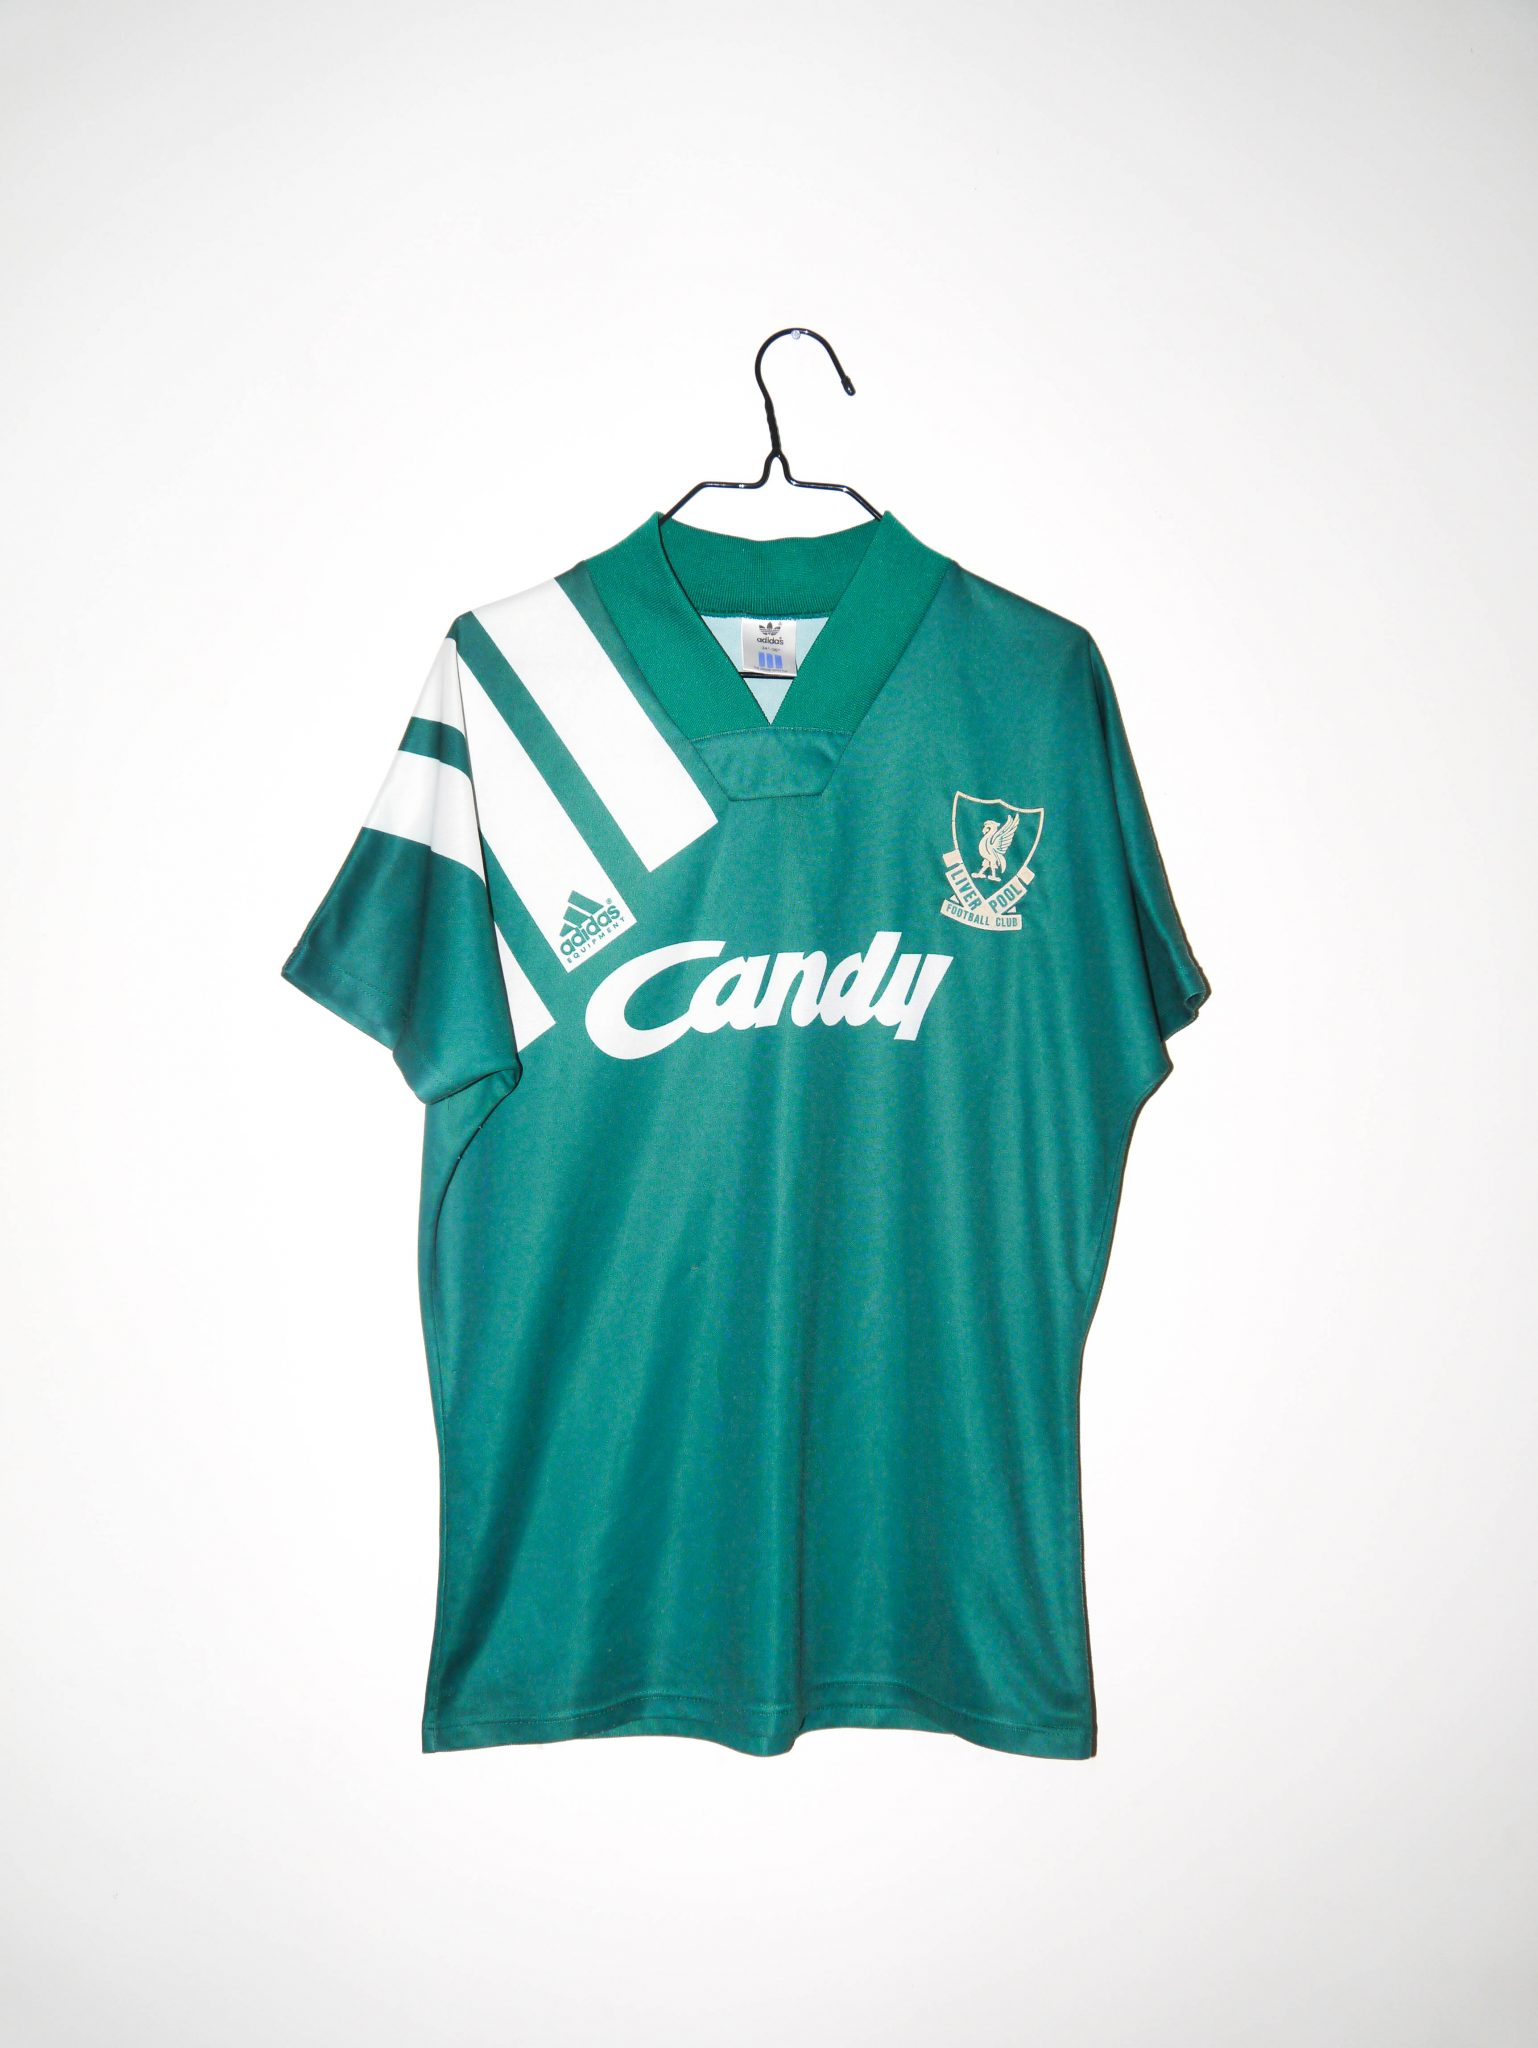 lowest price 8dcdf 6e4c4 Original 1991-92 Liverpool FC away jersey - S